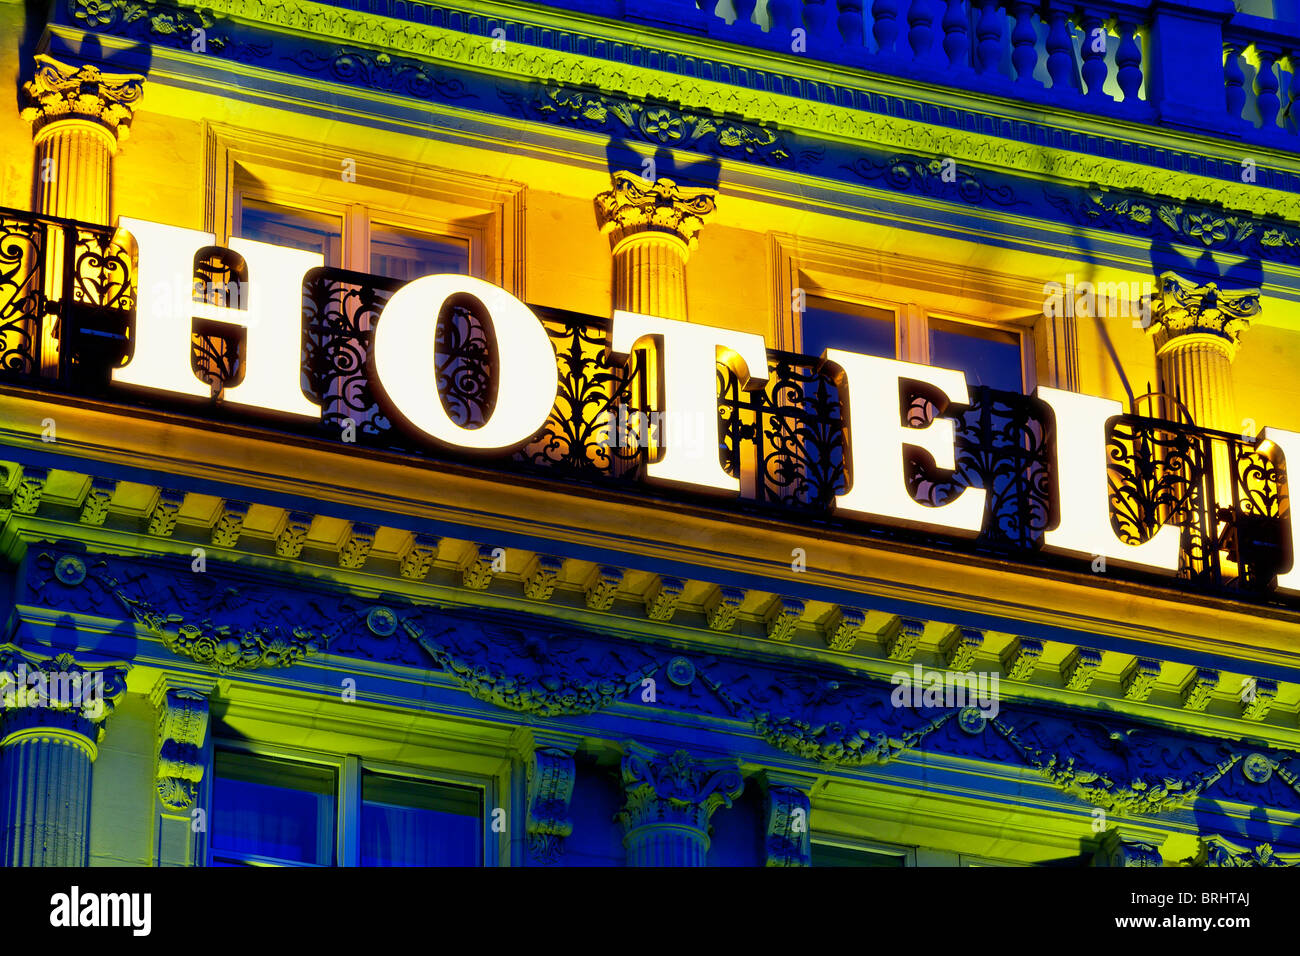 France, Paris, Hotel Sign Photo Stock